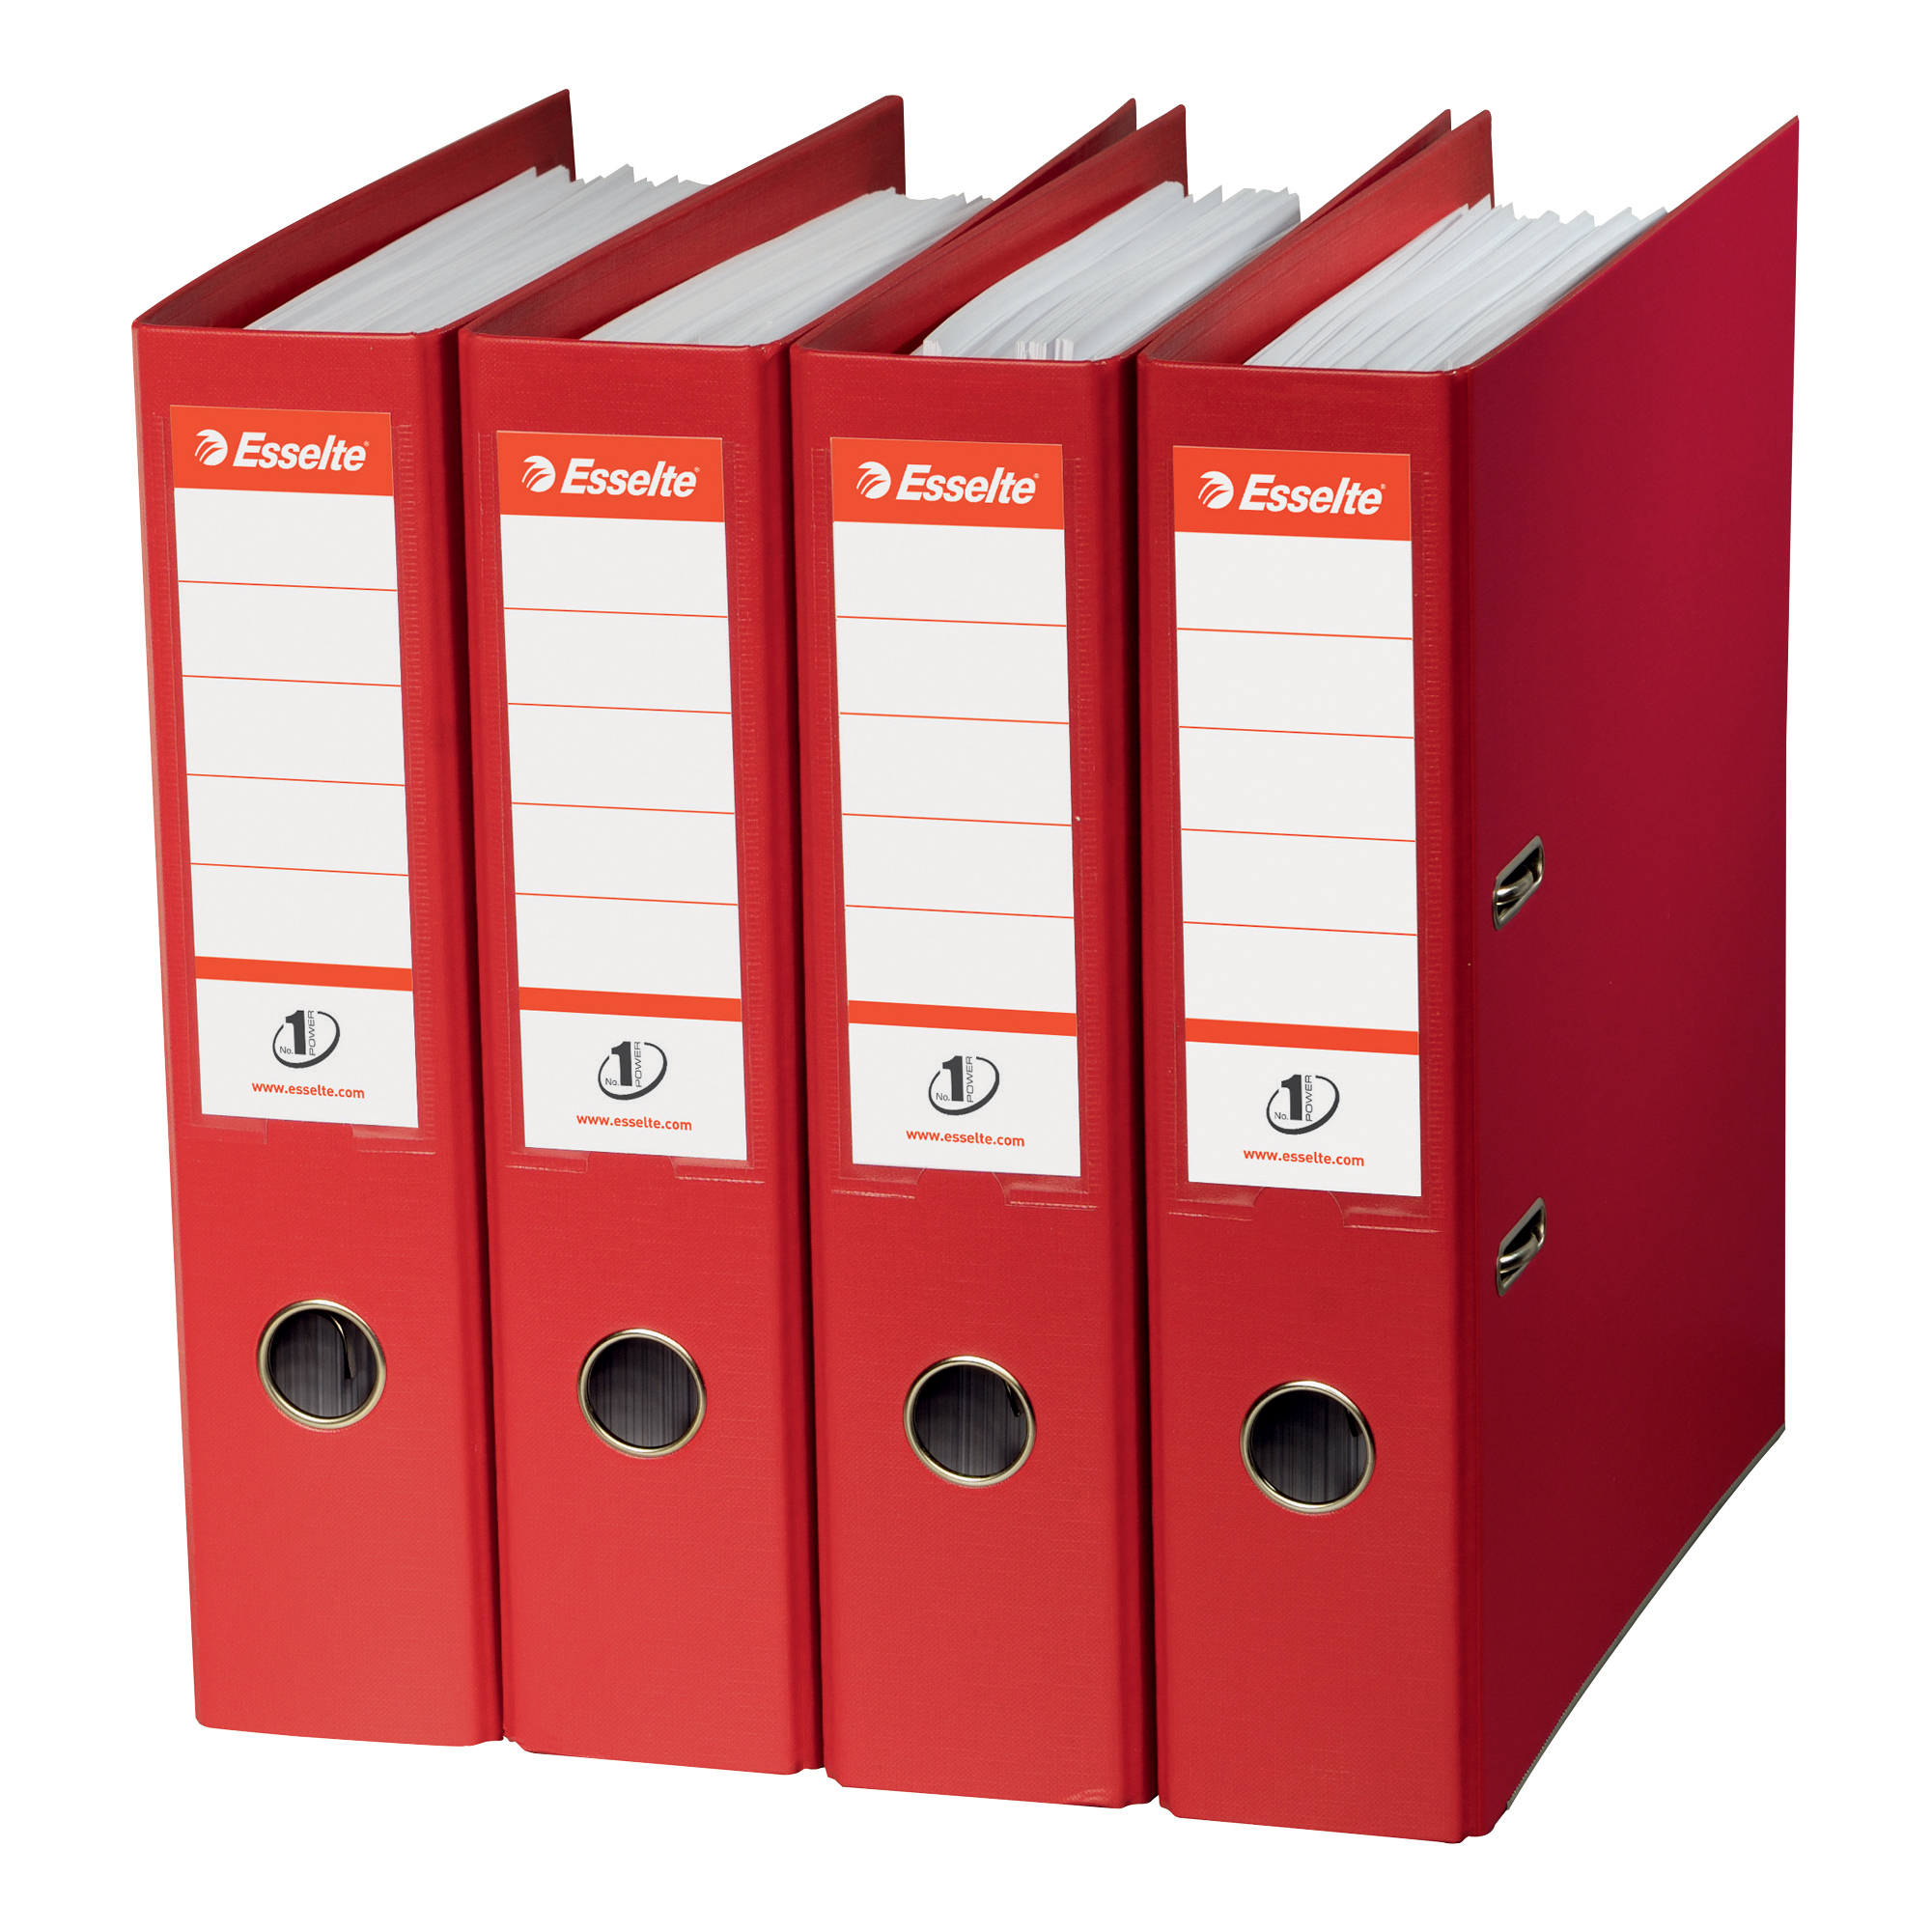 Esselte No. 1 Power Lever Arch File PP Slotted 75mm Spine A4 Red Ref 811330 Pack 10